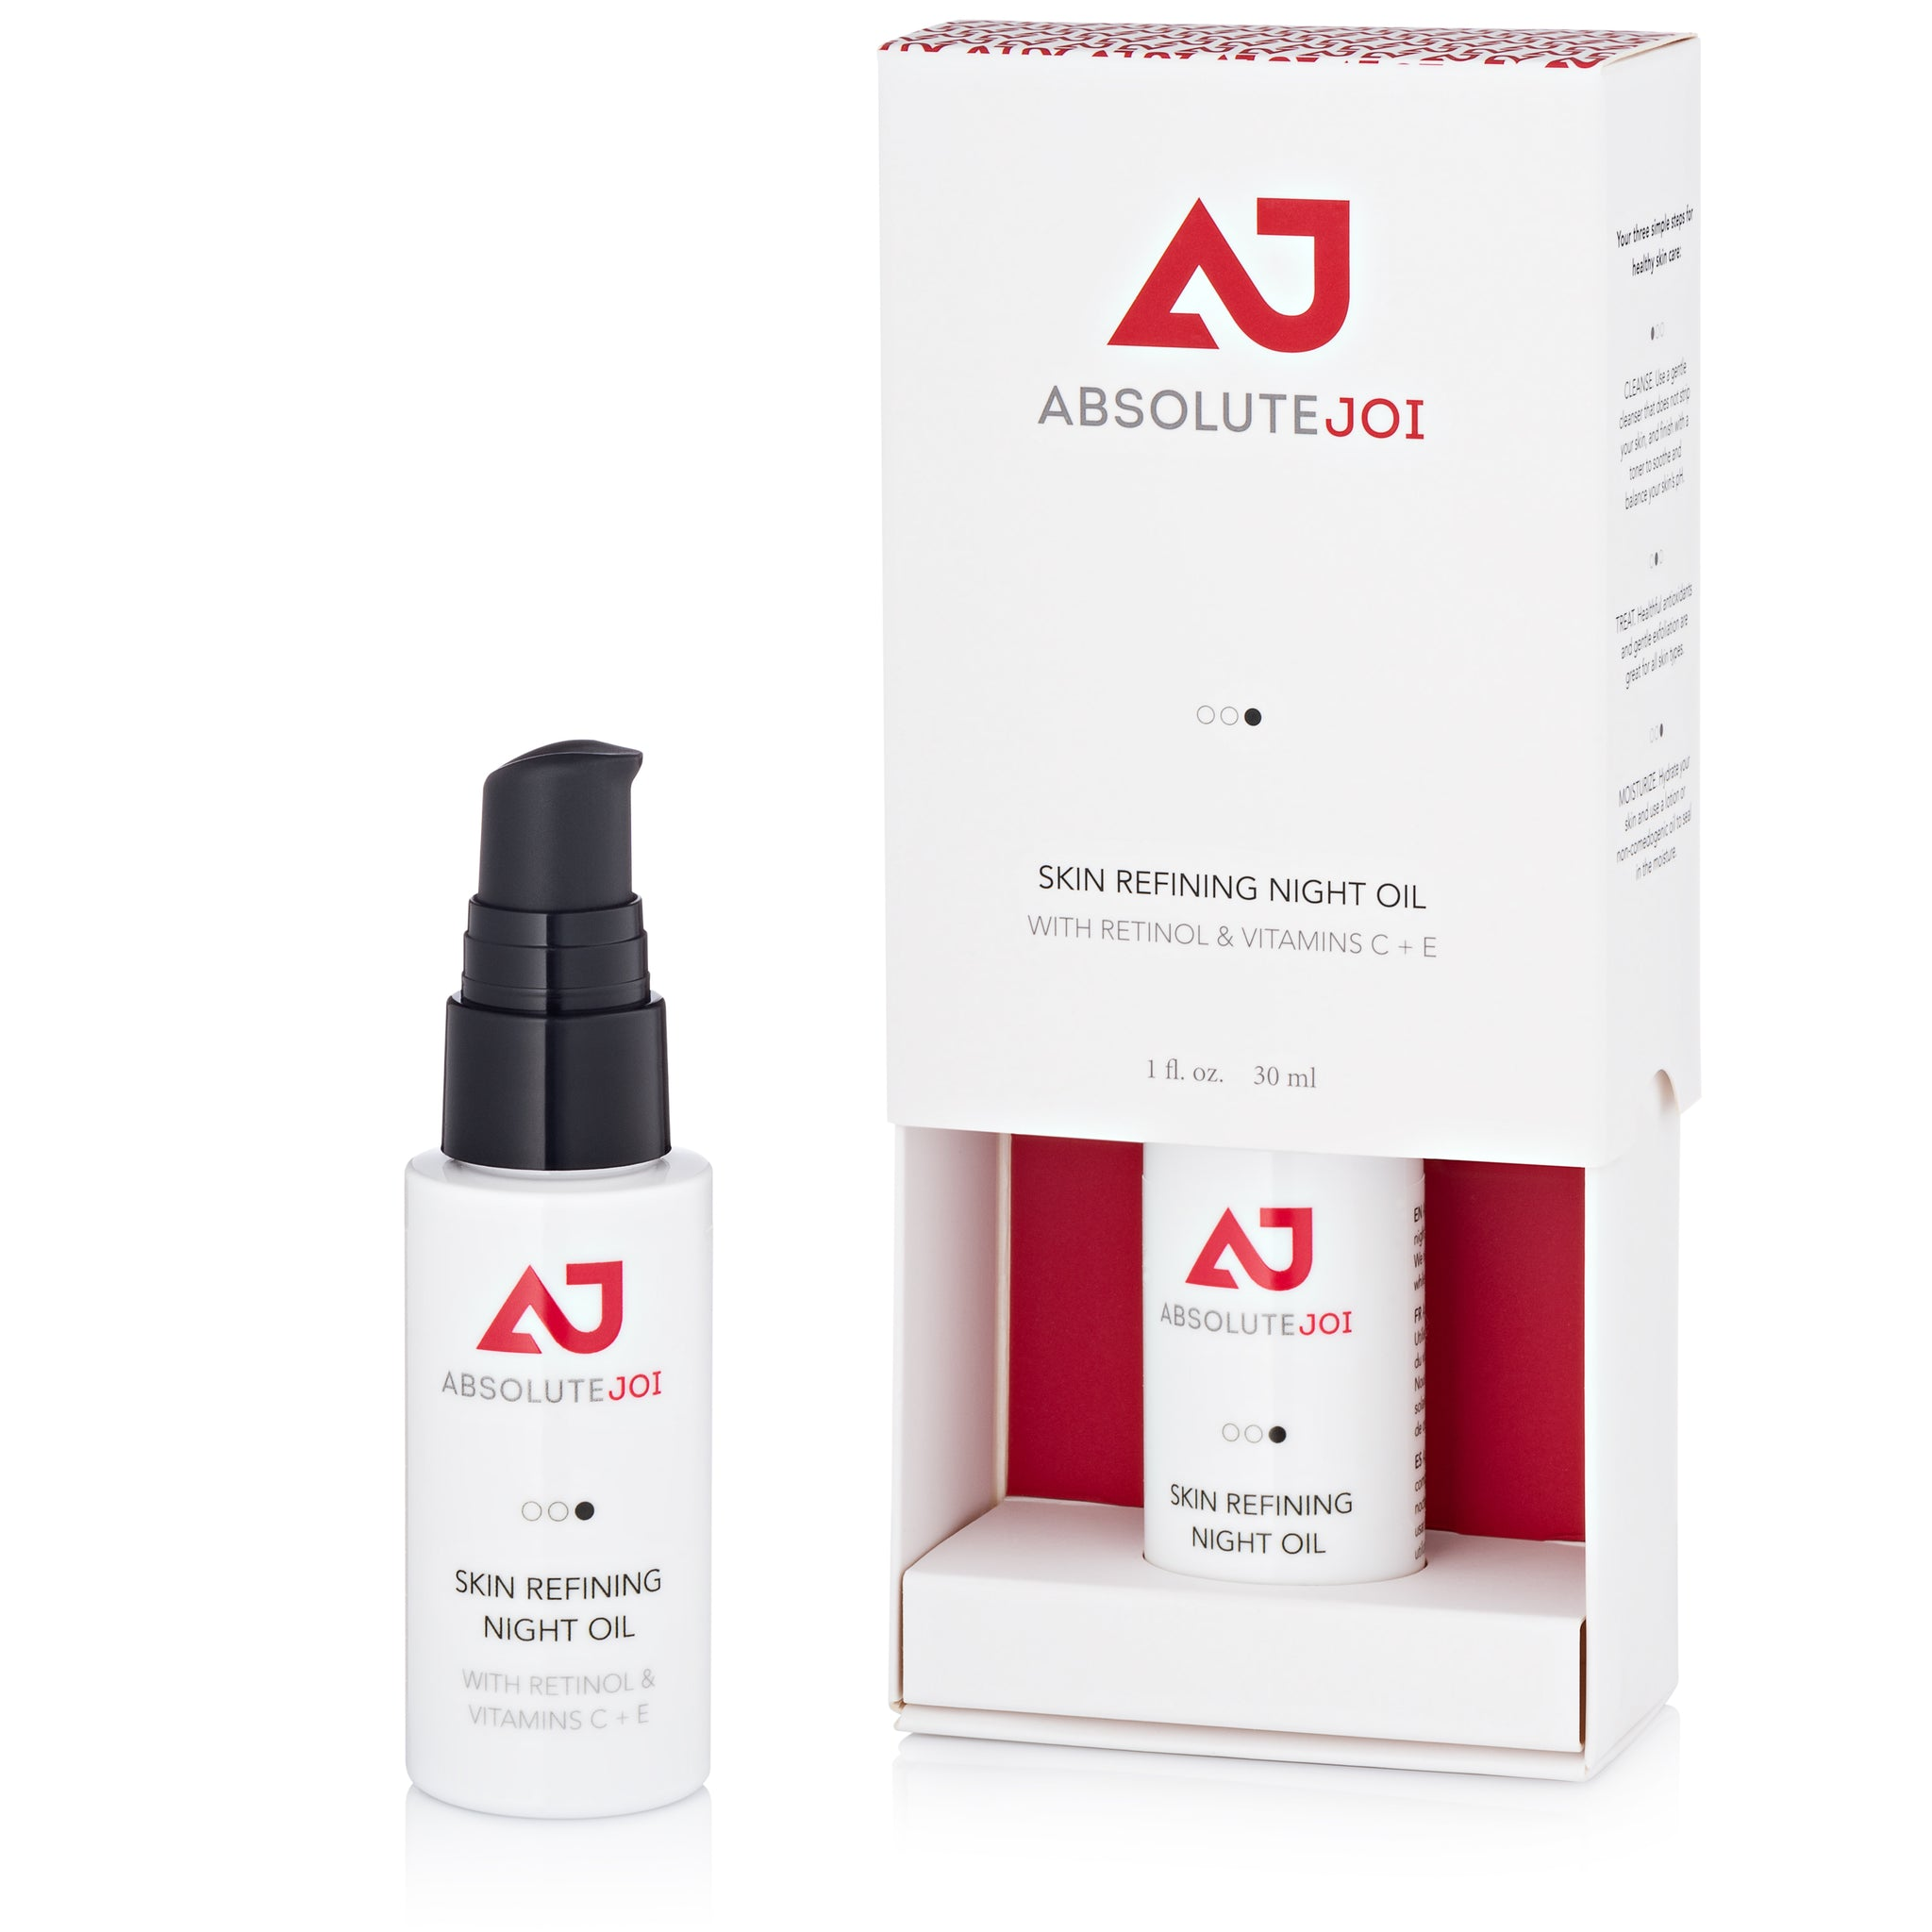 Skin Refining Night Oil with Retinol and Vitamins C+E - AbsoluteJOI SkinCare